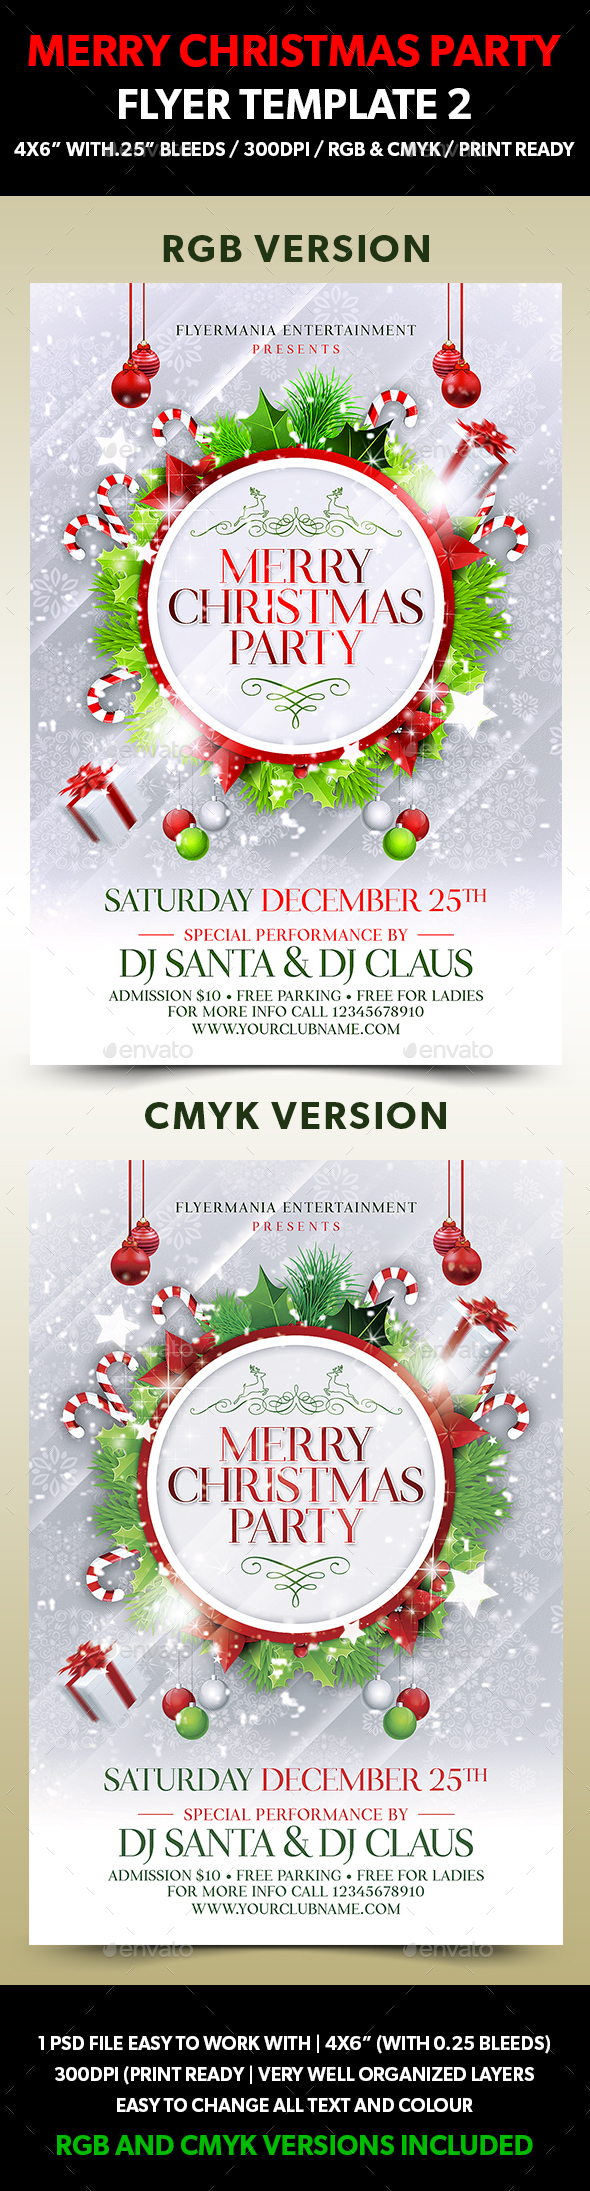 Merry Christmas Party Flyer Template 2